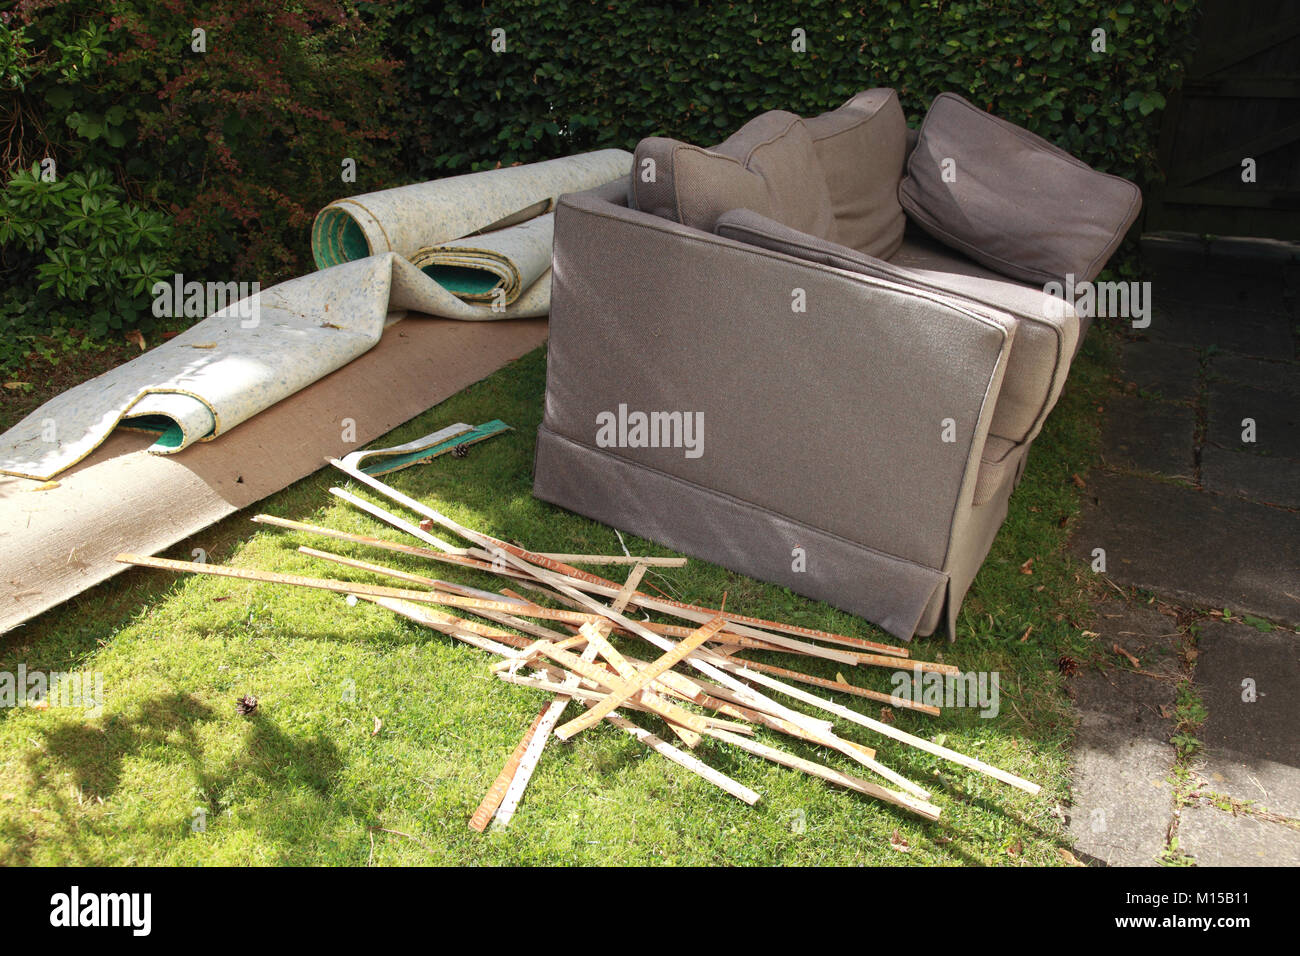 A sofa and a carpet being thrown out because of an infestation of moths - Stock Image